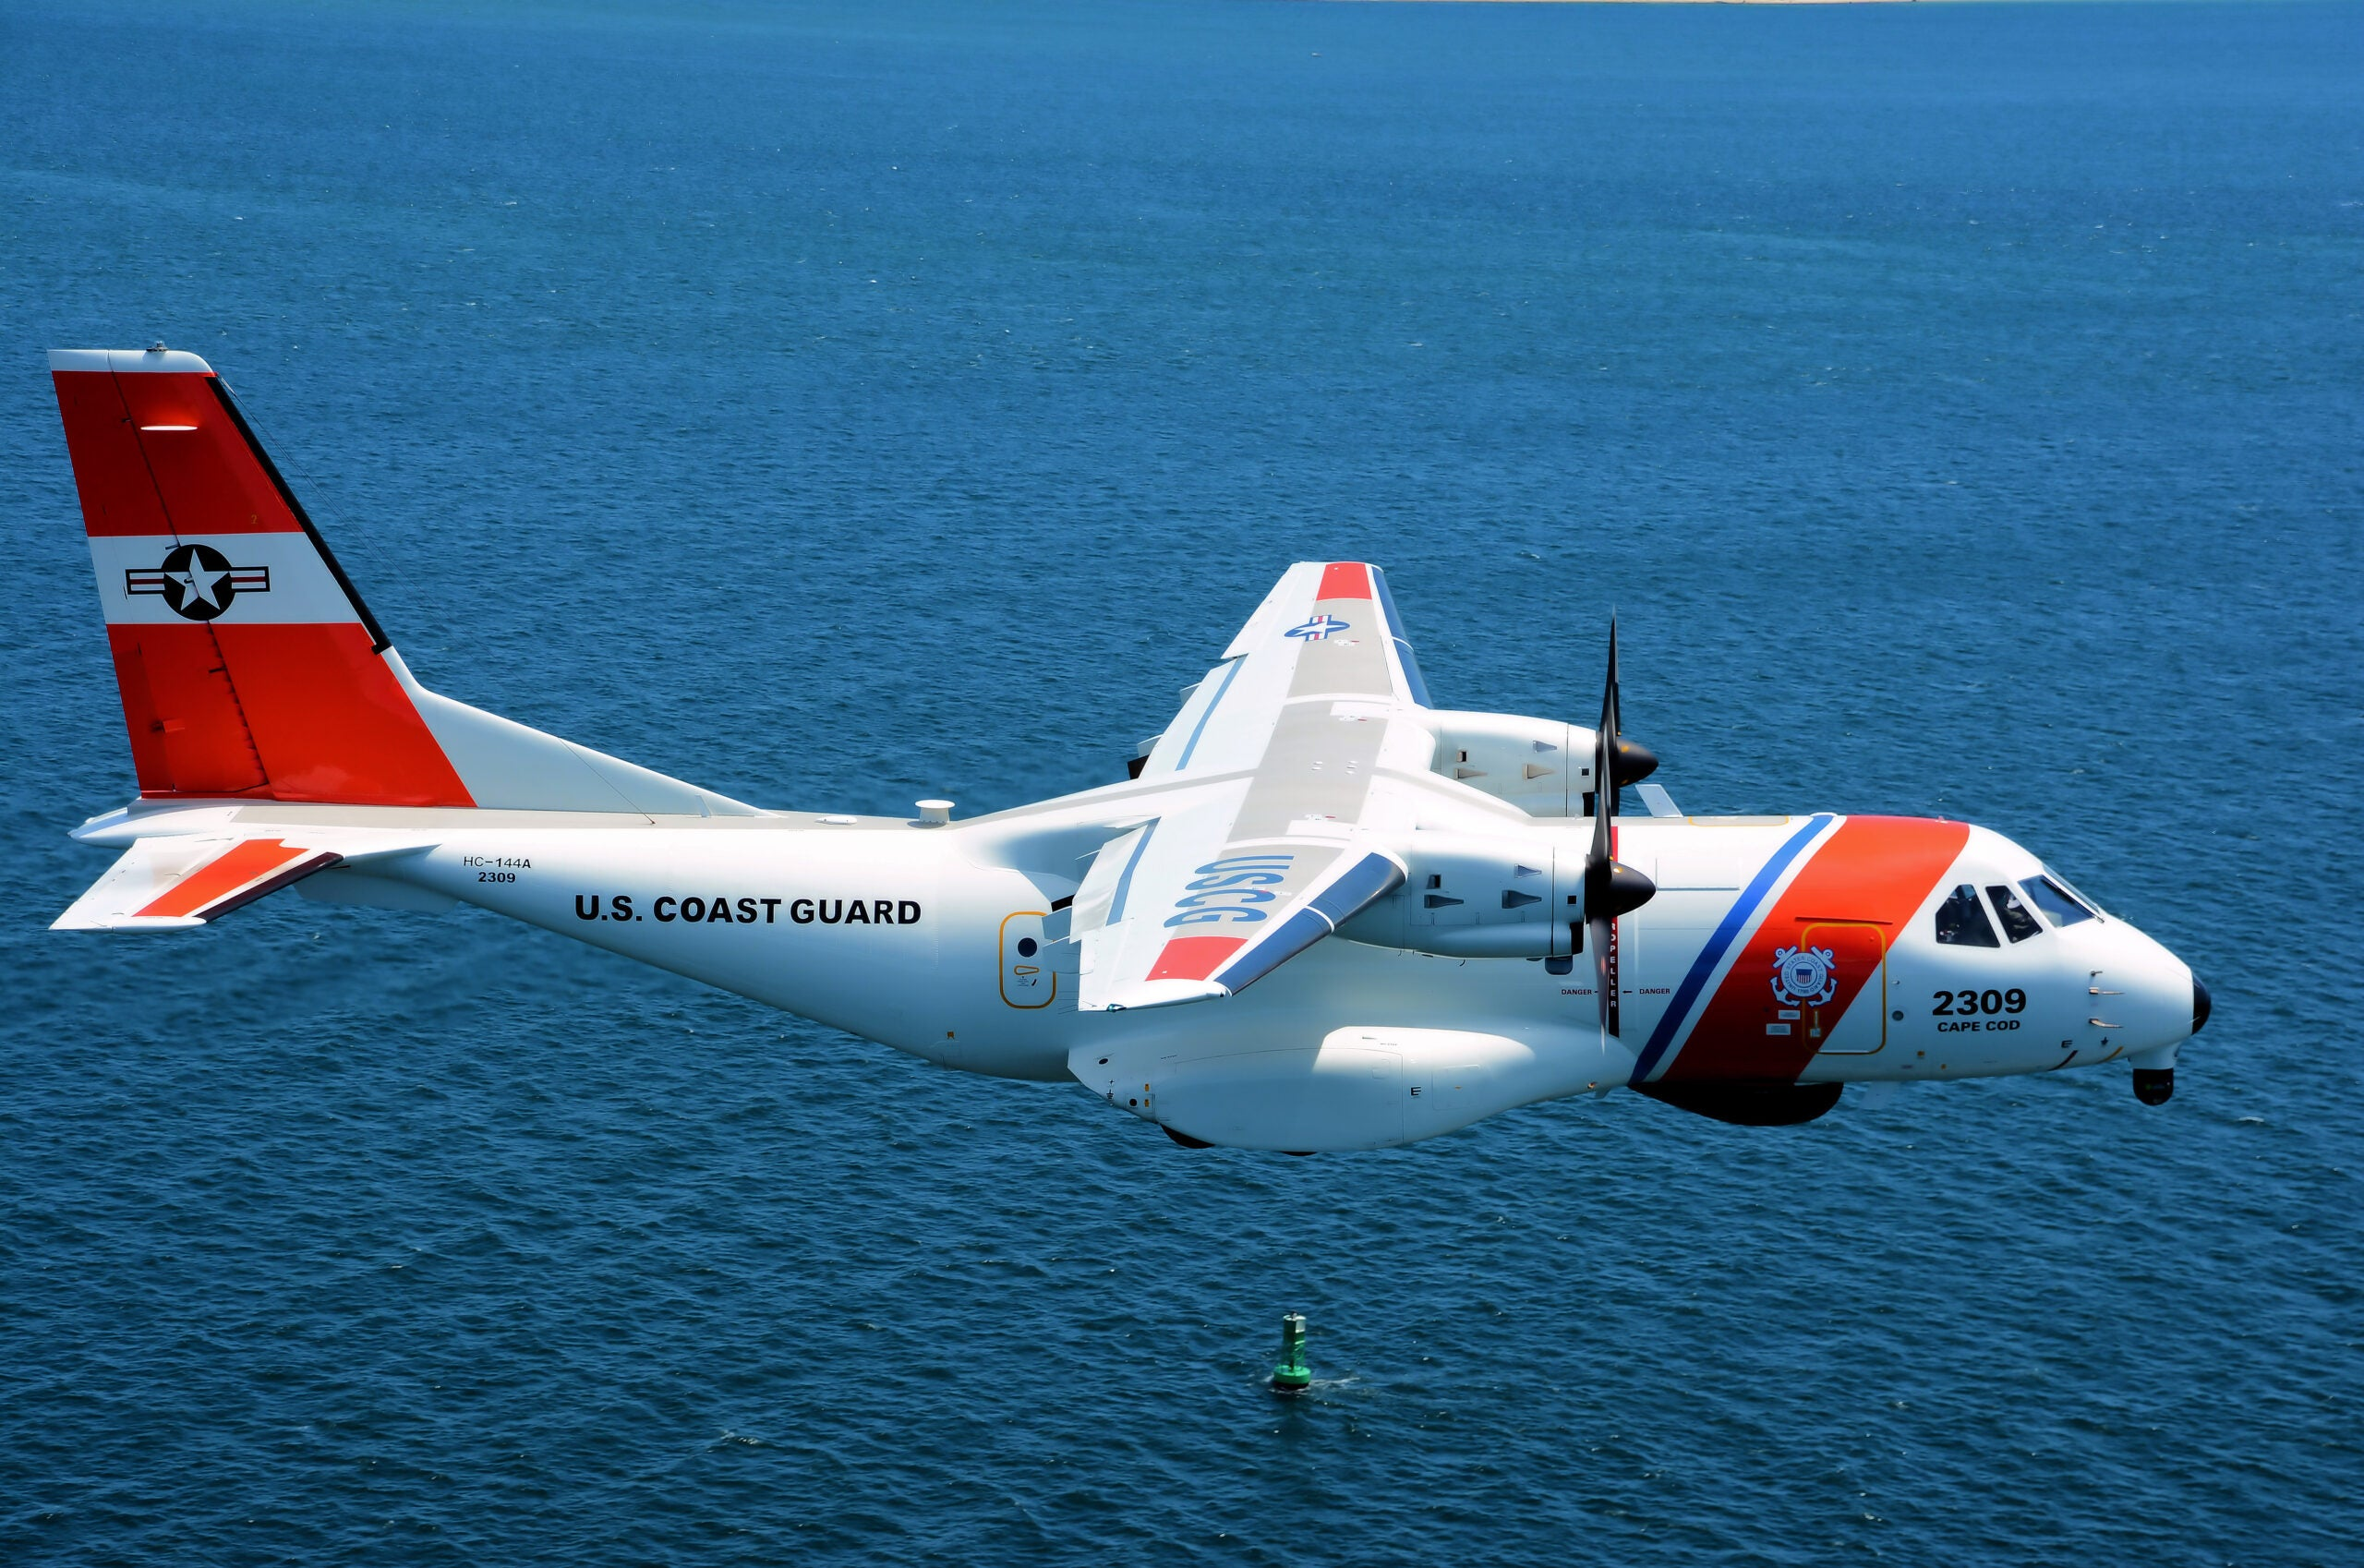 coast guard performing a rescue